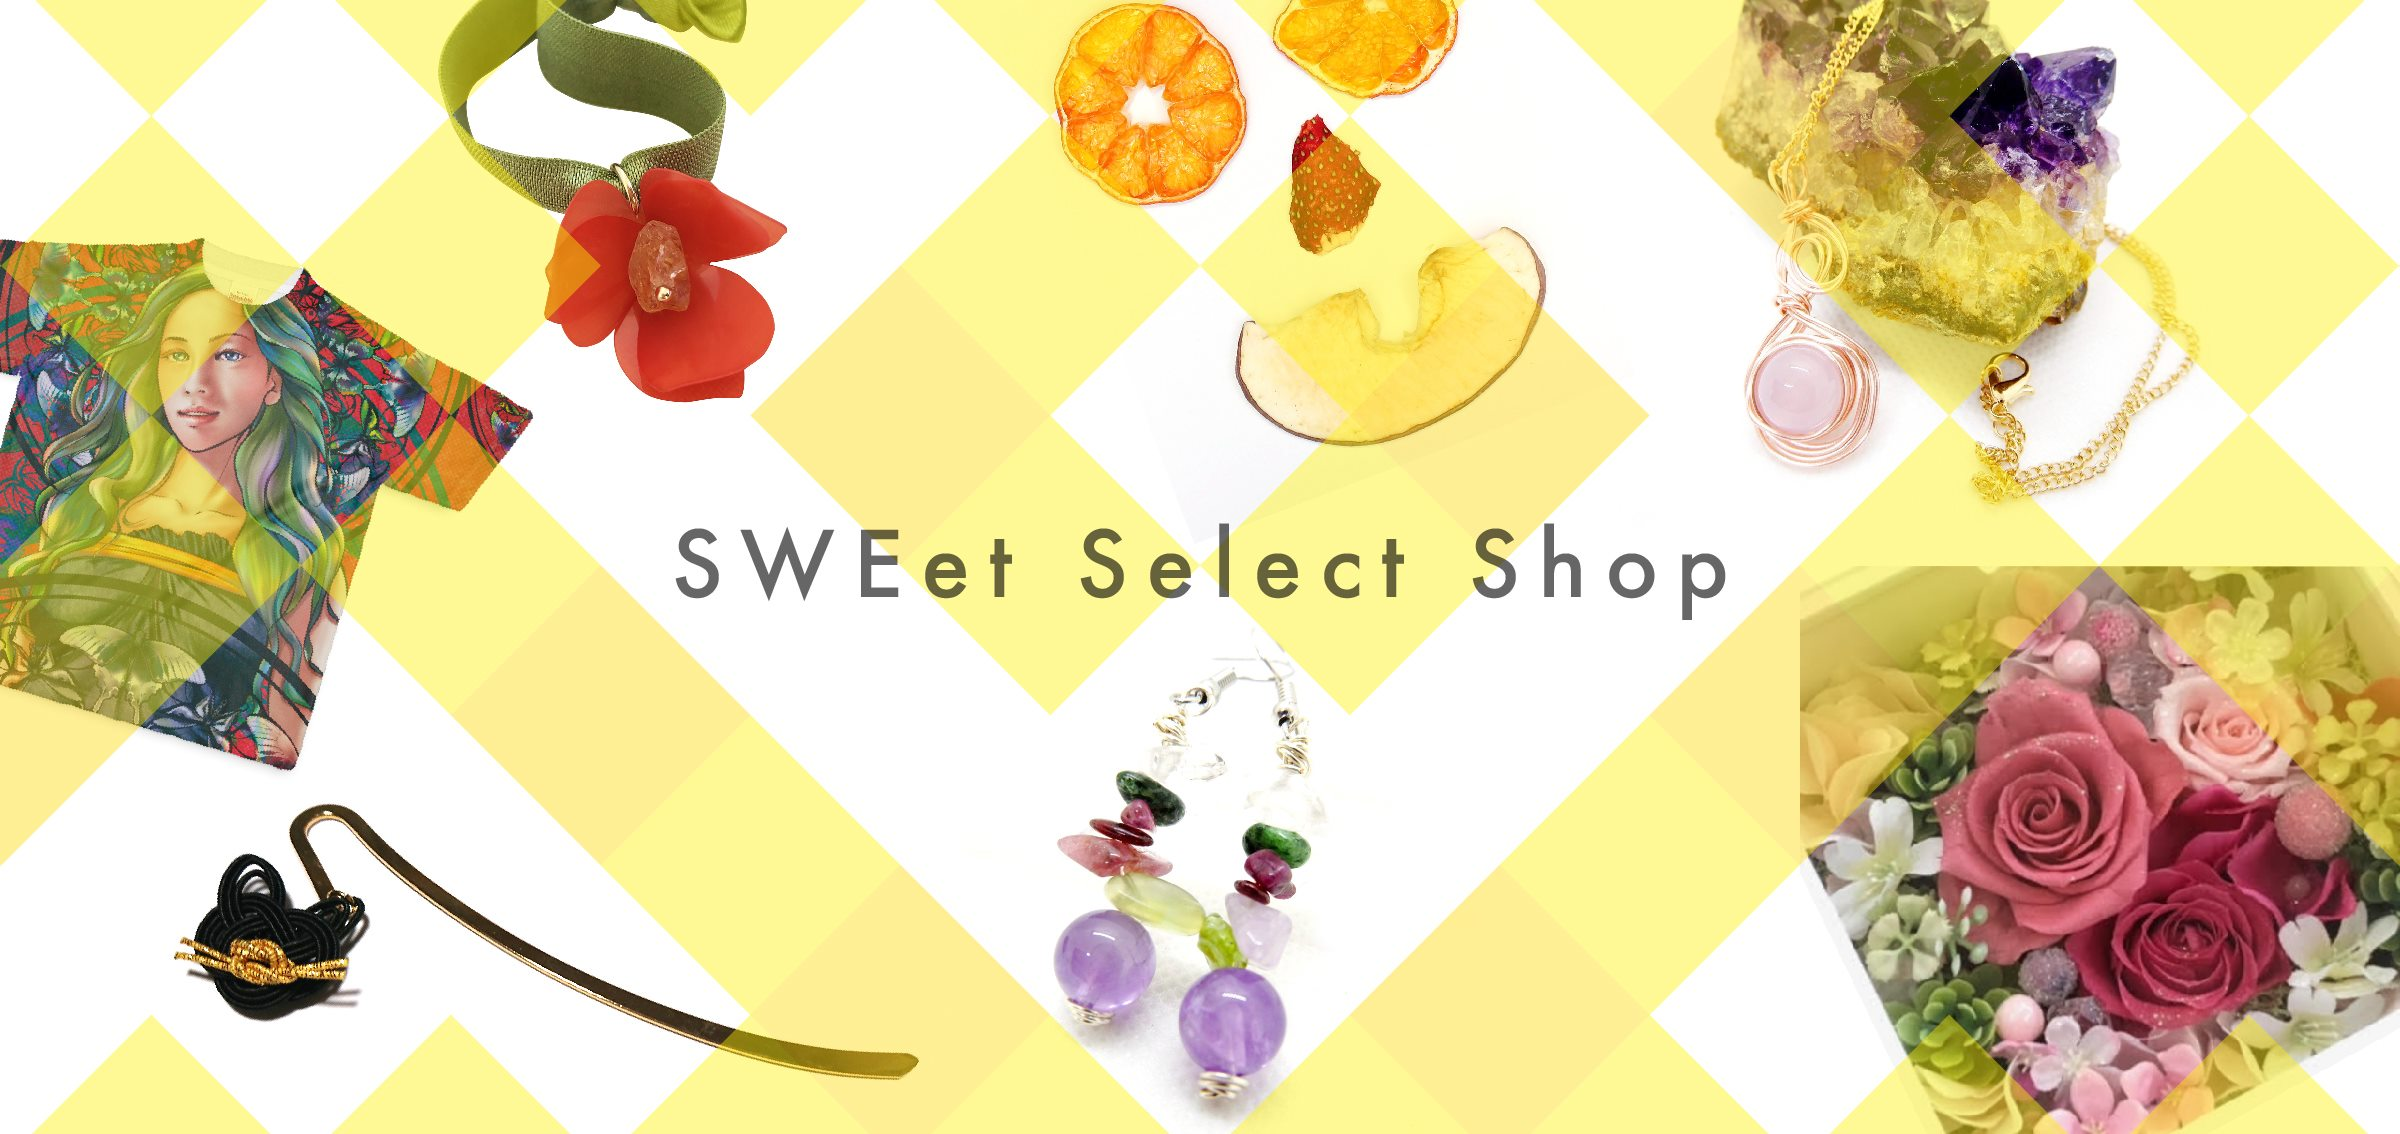 SWEet Select Shop